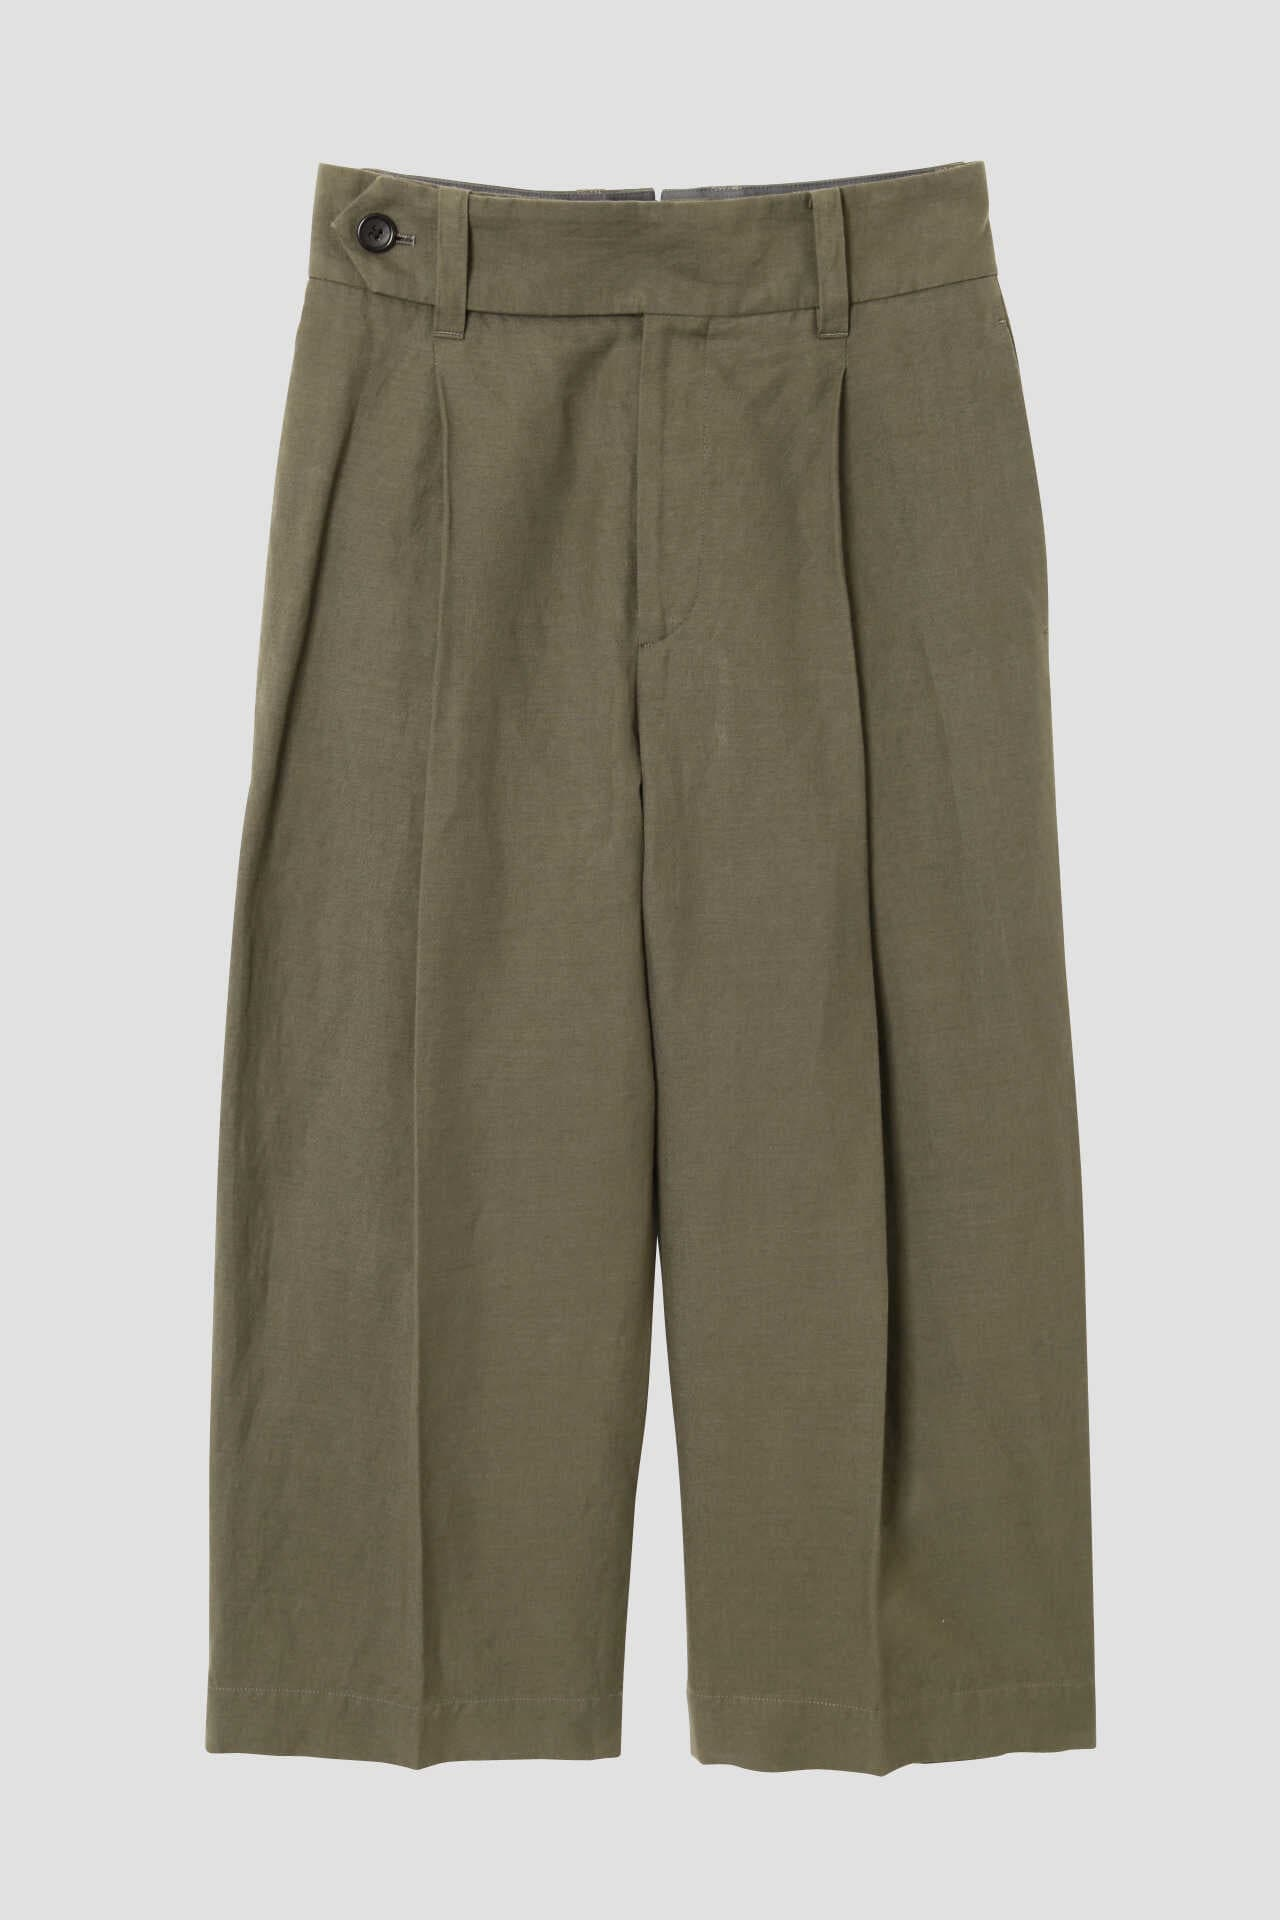 HIGH TWIST LINEN COTTON TWILL7